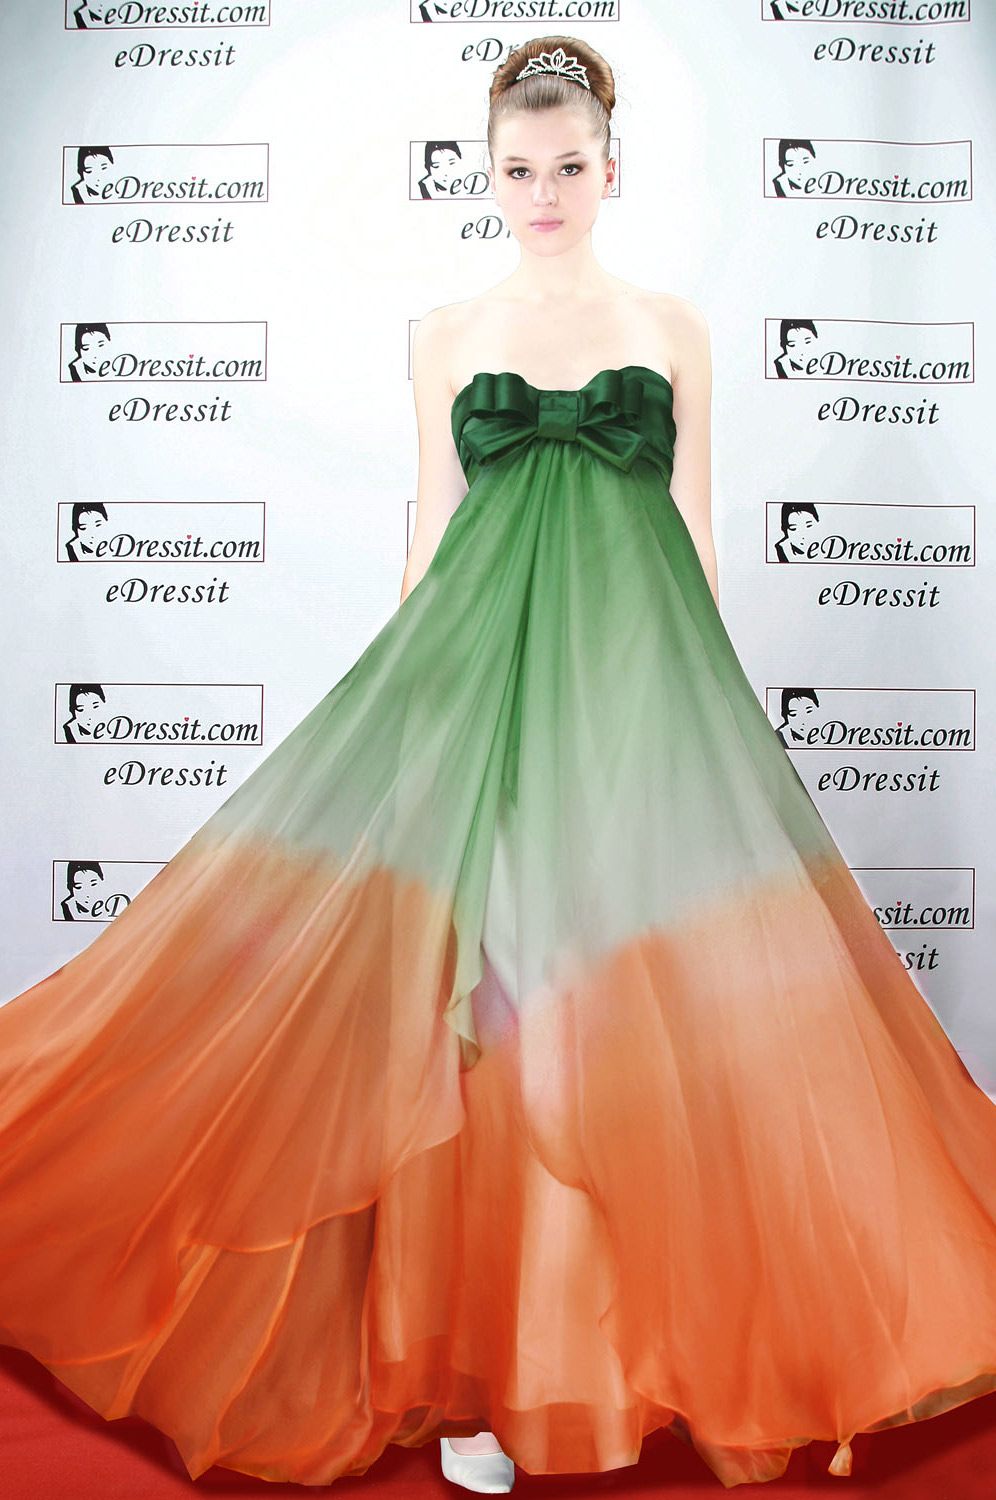 On sale !! eDressit Celebrity Sexy Prom Gown Evening Dress (00096056f)